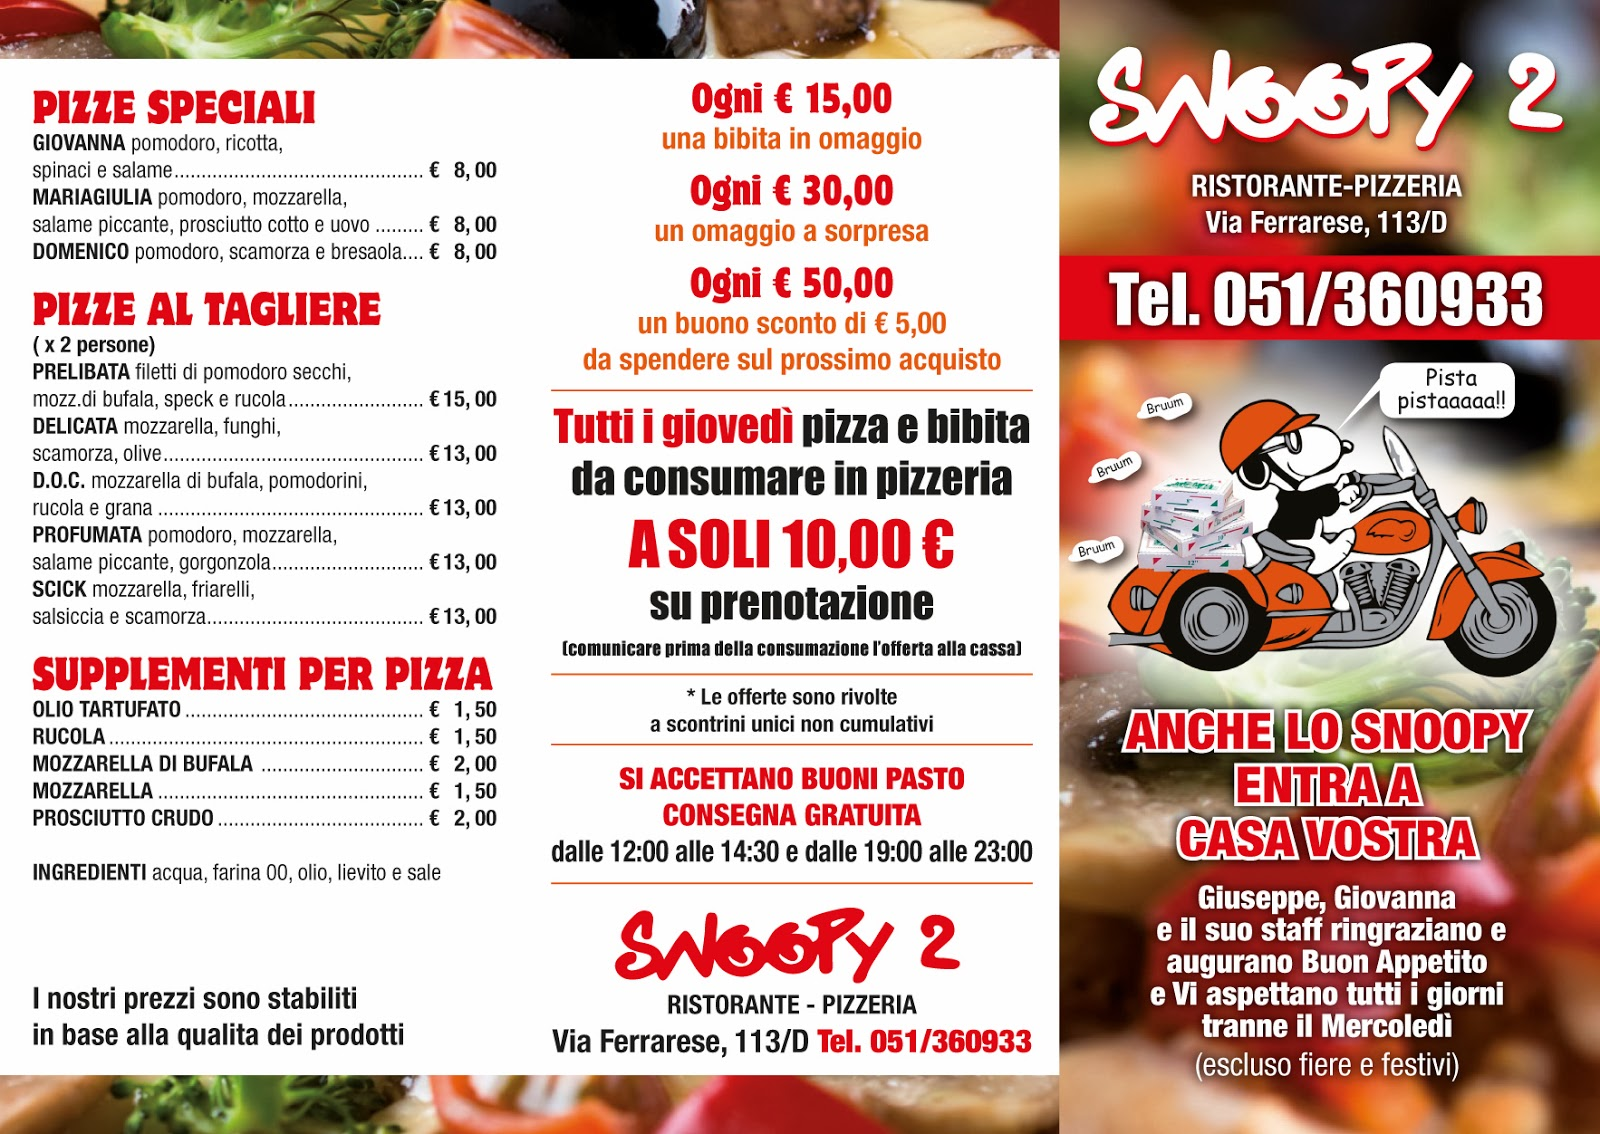 Favorito Pieghevoli Ristorante Pizzeria Snoopy 2 | SG COMMUNICATION  UQ04